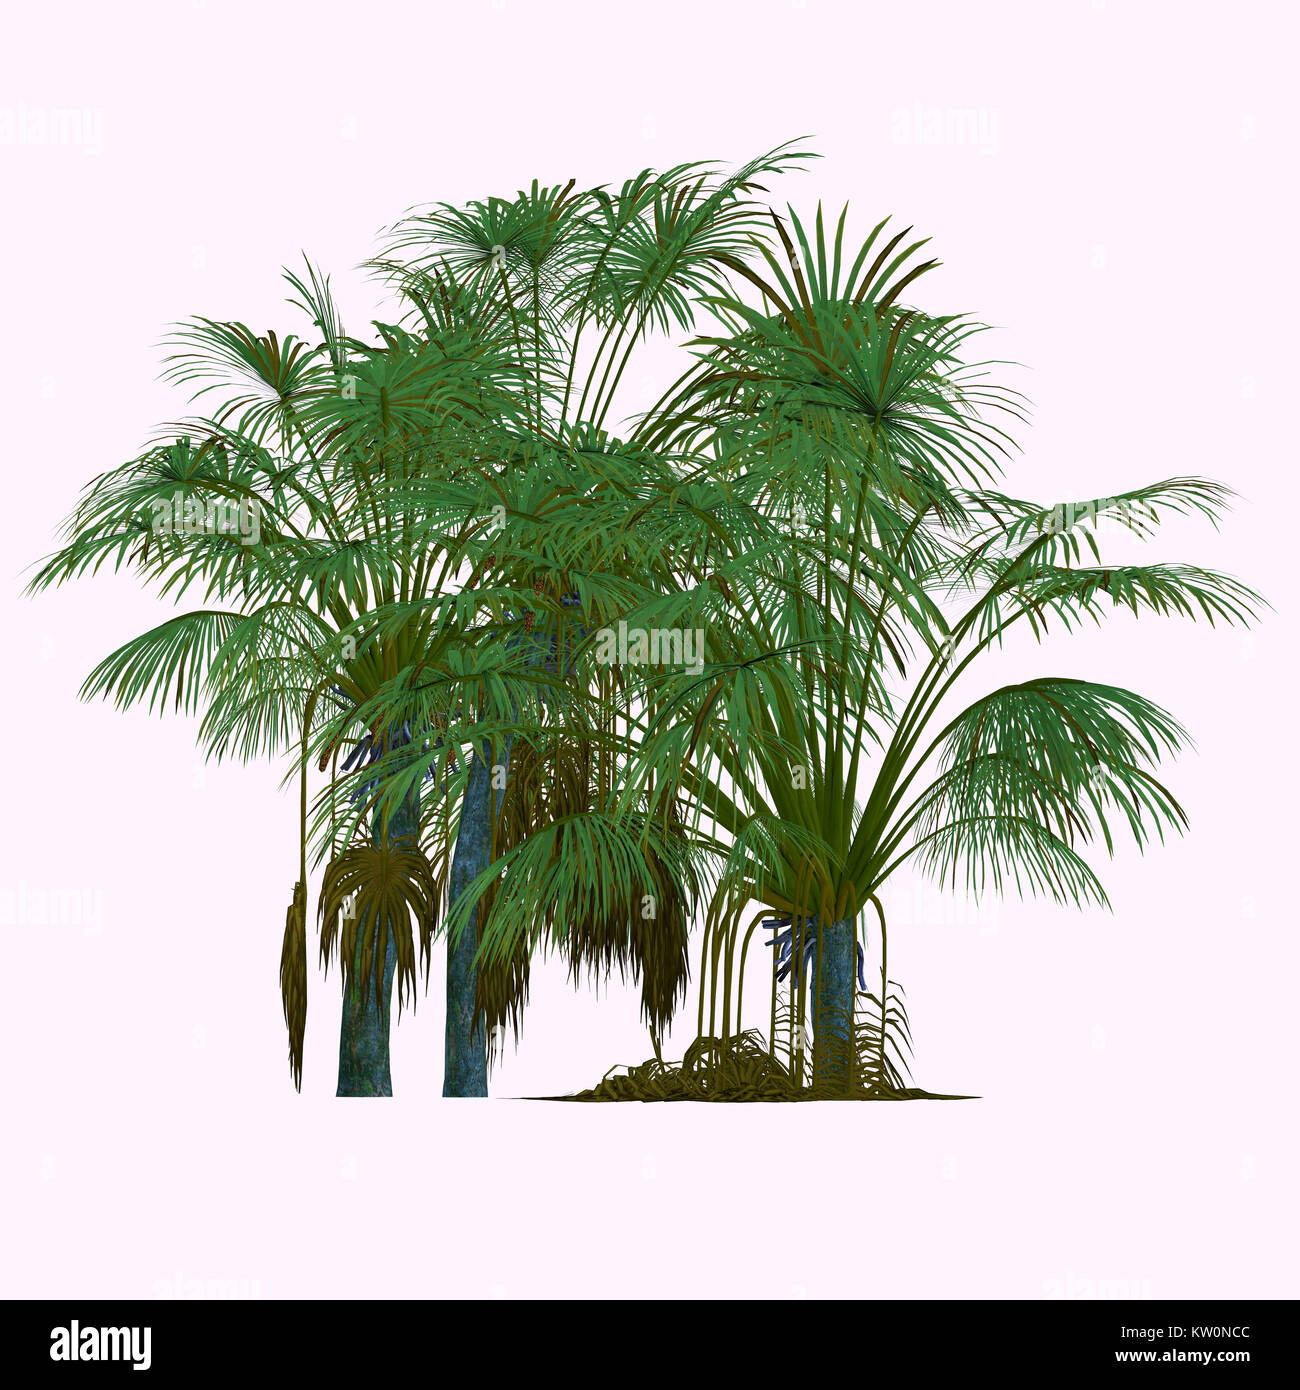 Coco de Mer Trees - This is a palm endemic to the islands of Praslin and Curieuse in the Seychelles and is the sole - Stock Image